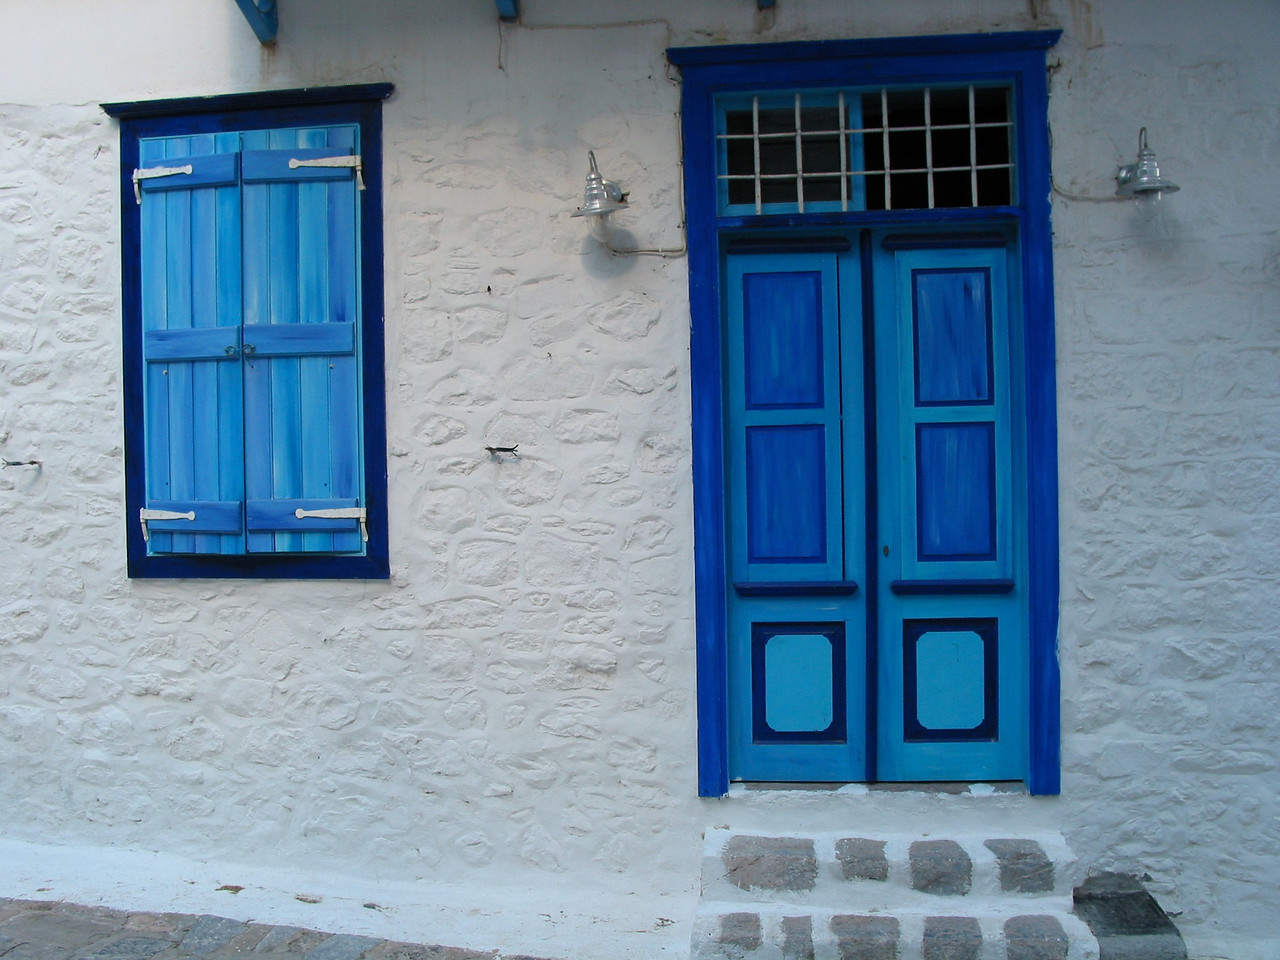 As you walk through town, you also see many of the traditional white washed houses with colorful doors and windows.